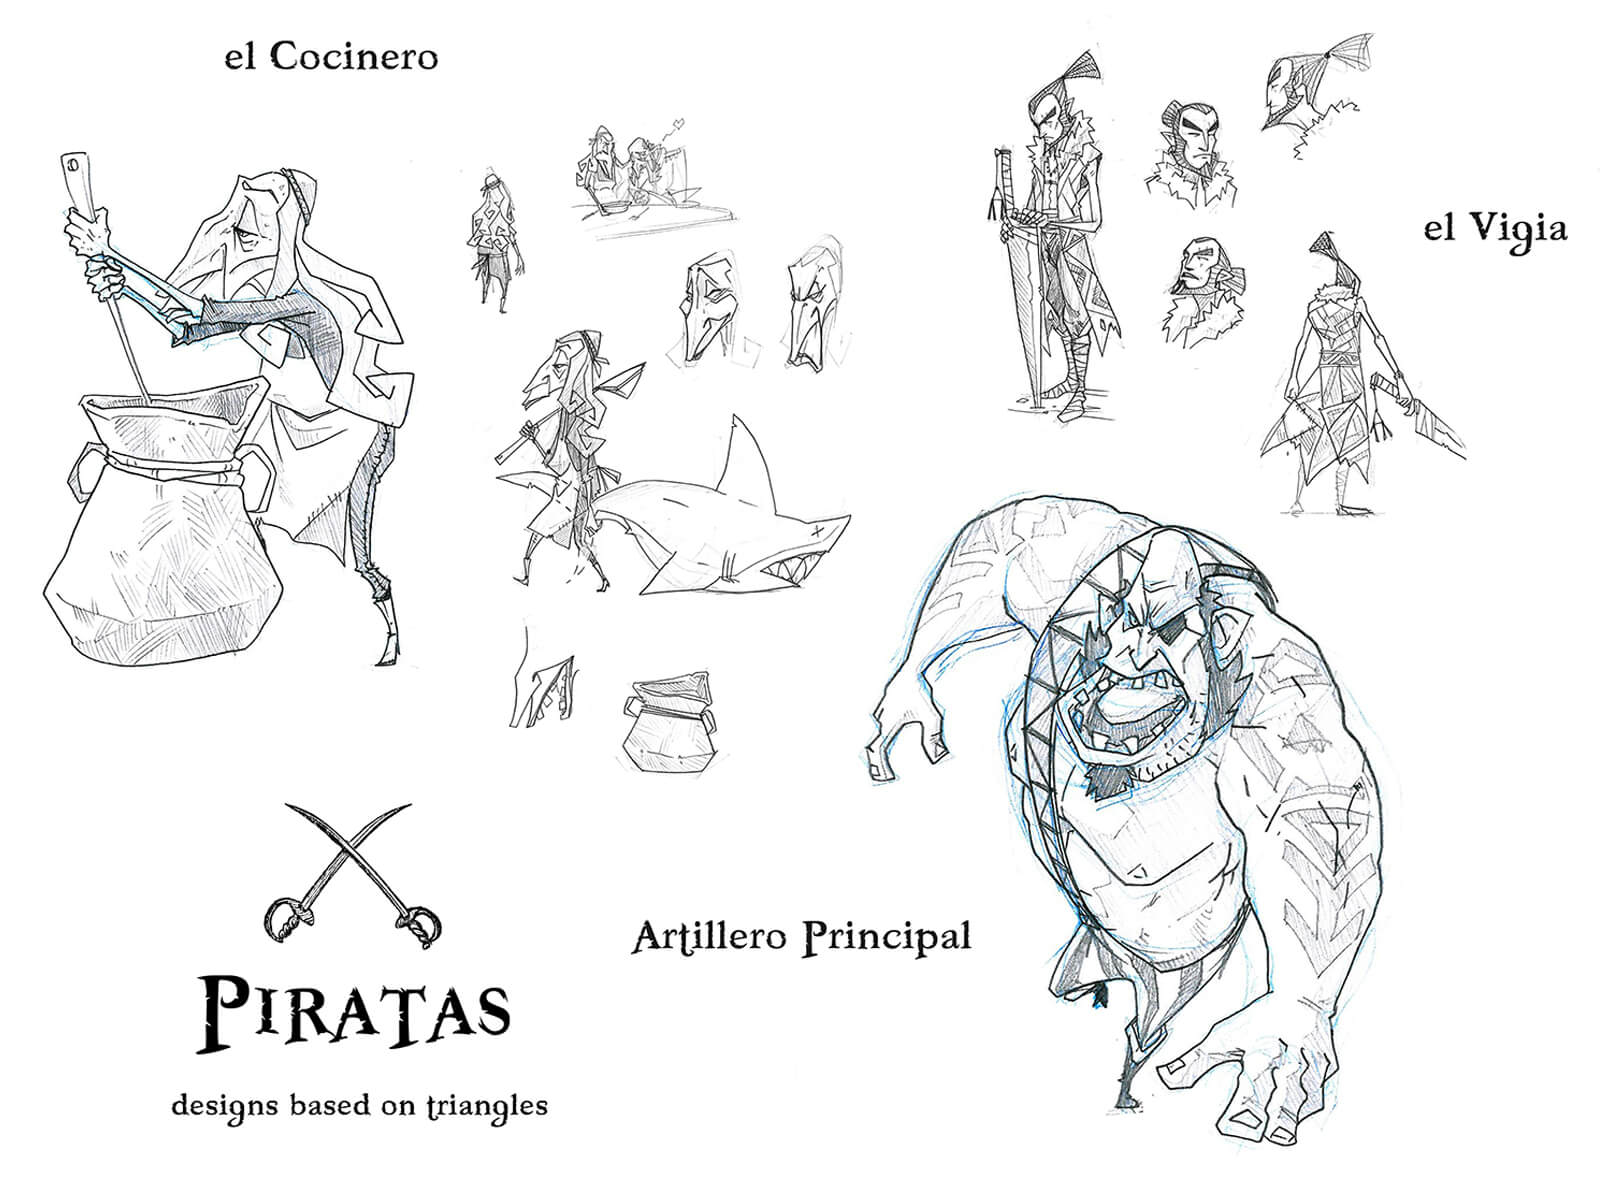 Black-and-white sketches of an old cook, a sword-wielding watchman, and a hulking pirate artilleryman.